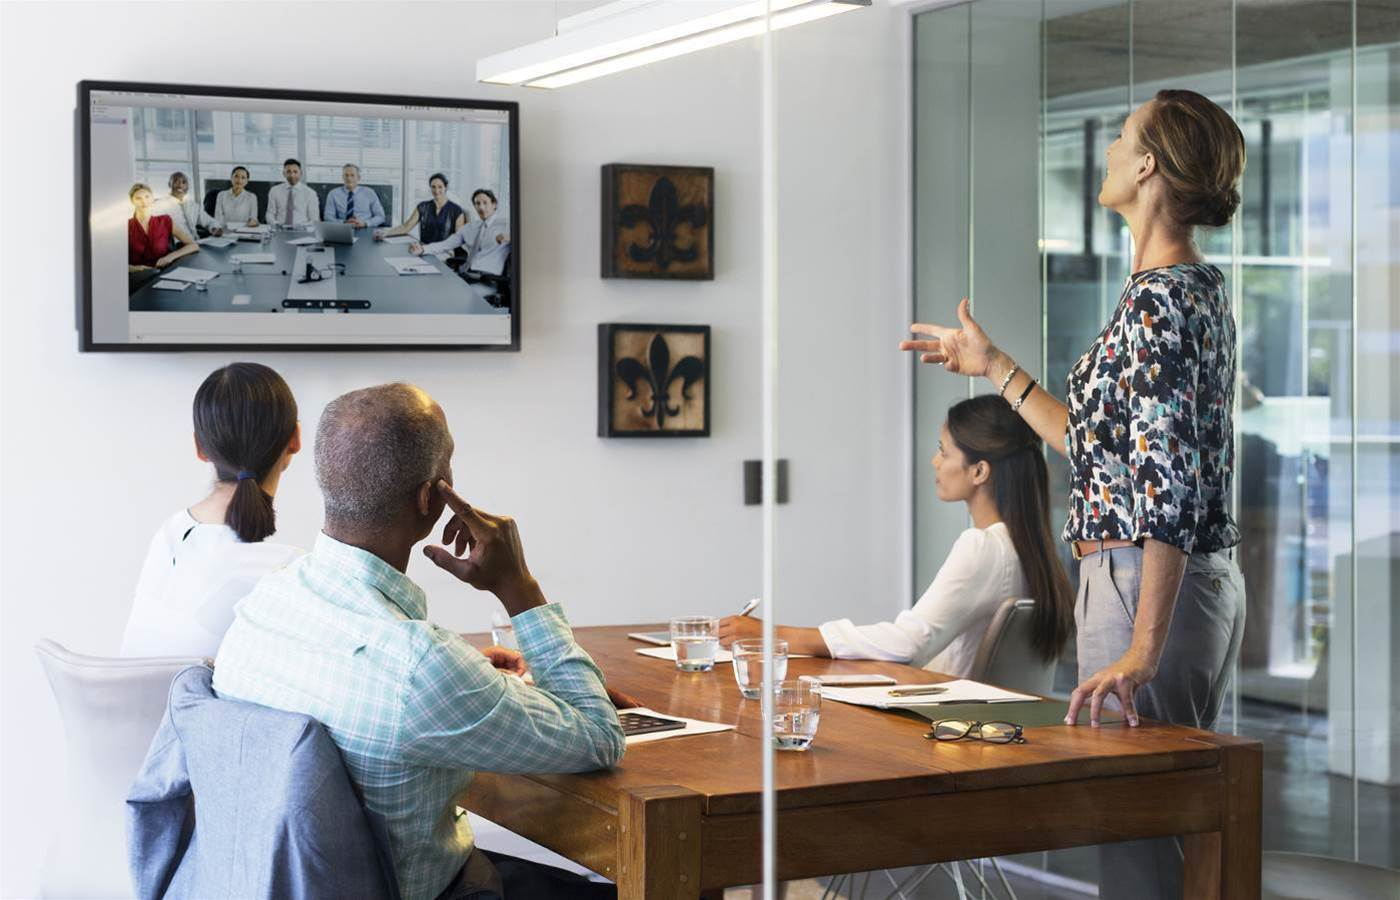 DXC wins deal to update the National Telepresence System with Cisco systems